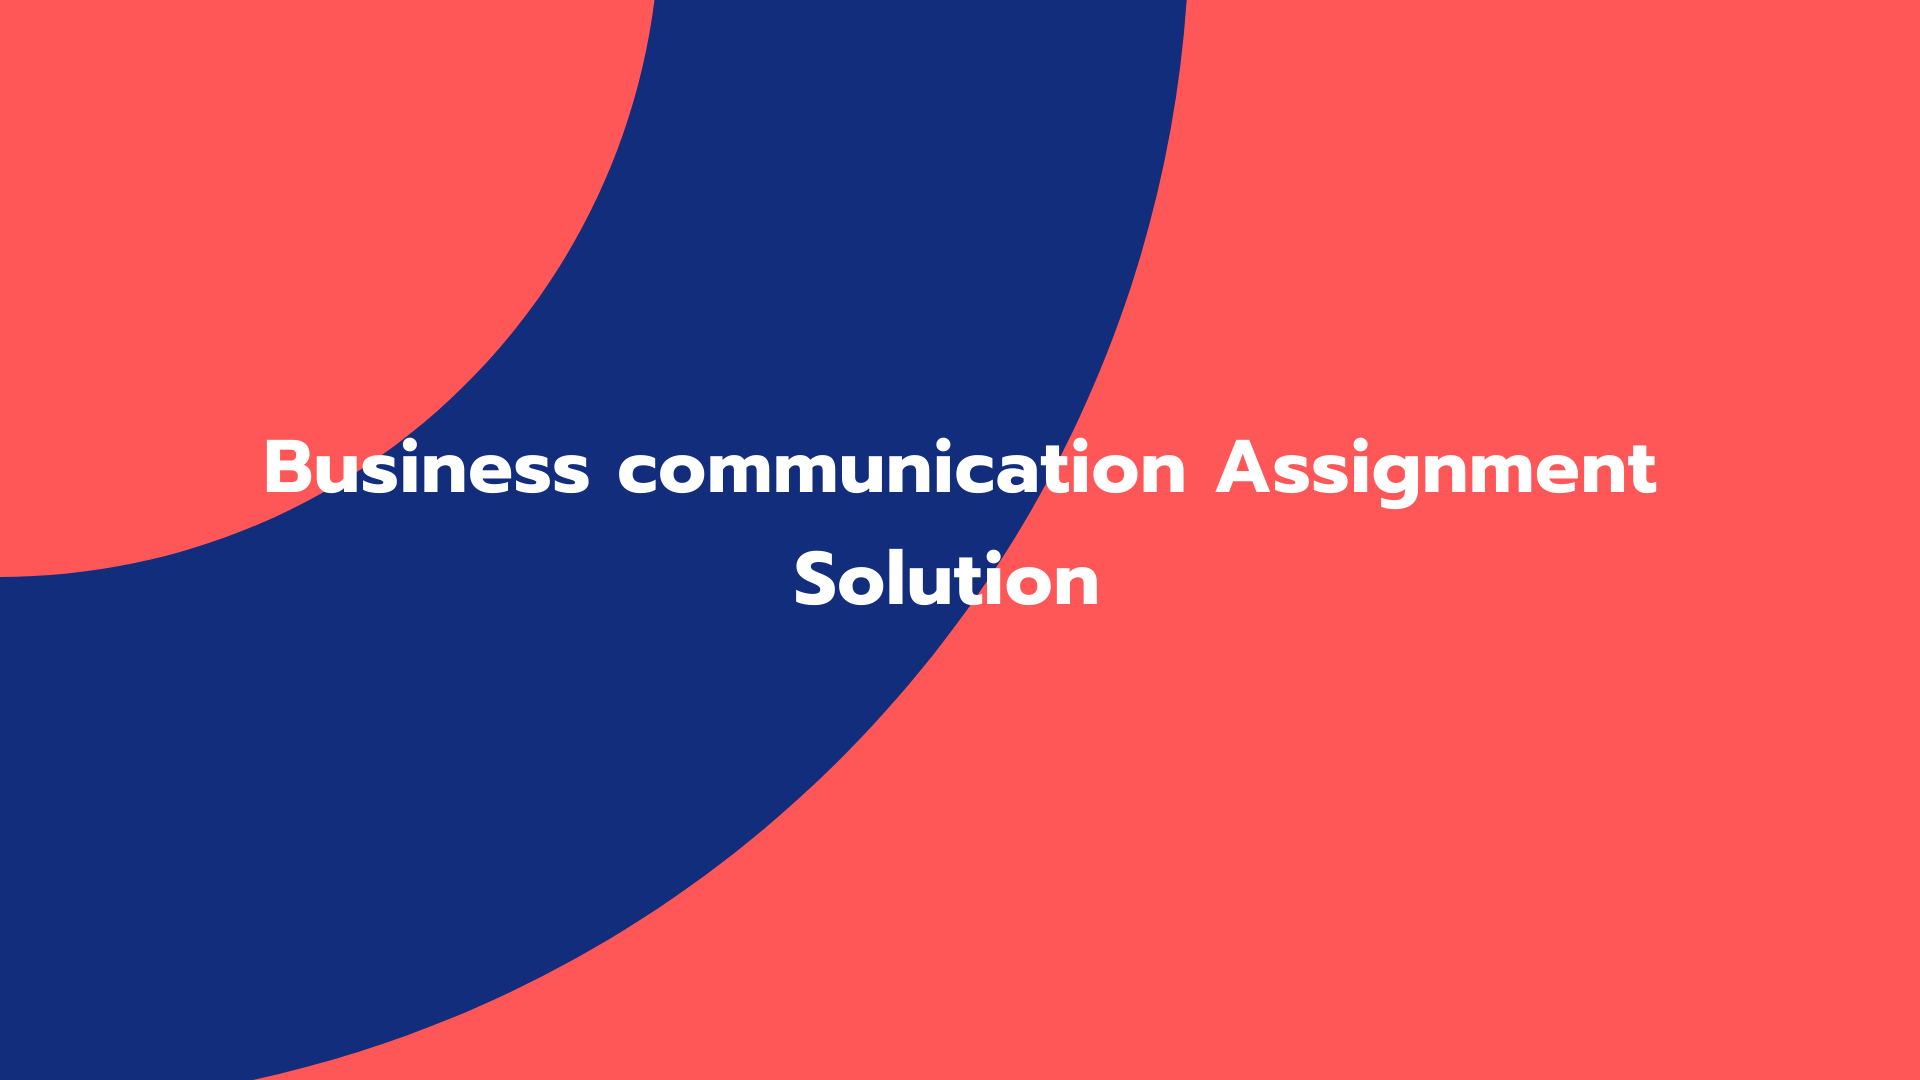 Business communication Assignment Solution